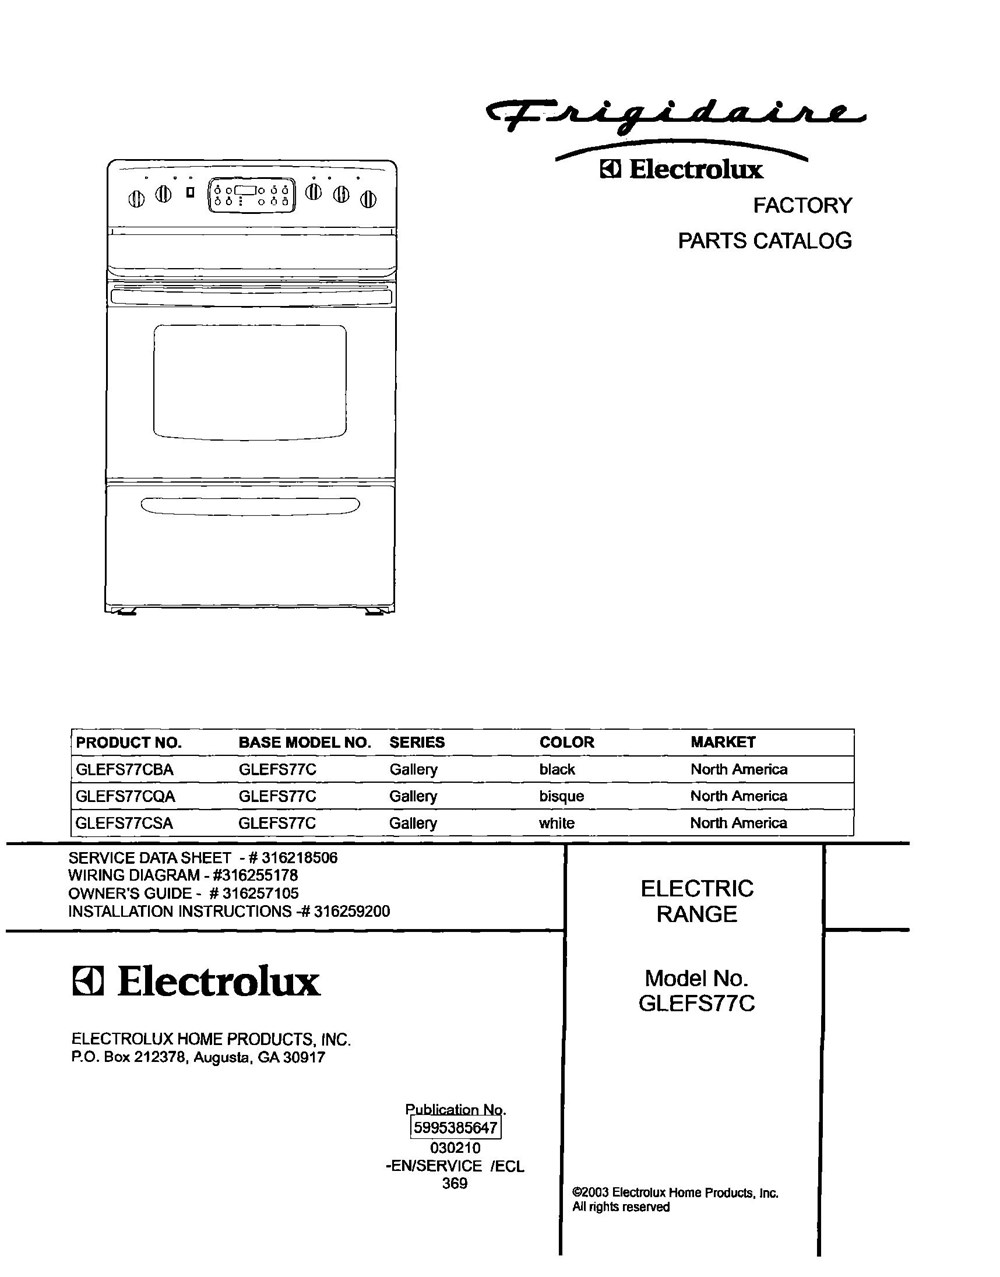 Glefs77csa Frigidaire Company Appliance Parts Backguard 05body 07top Drawer 09door 01cover 10wiring Diagram